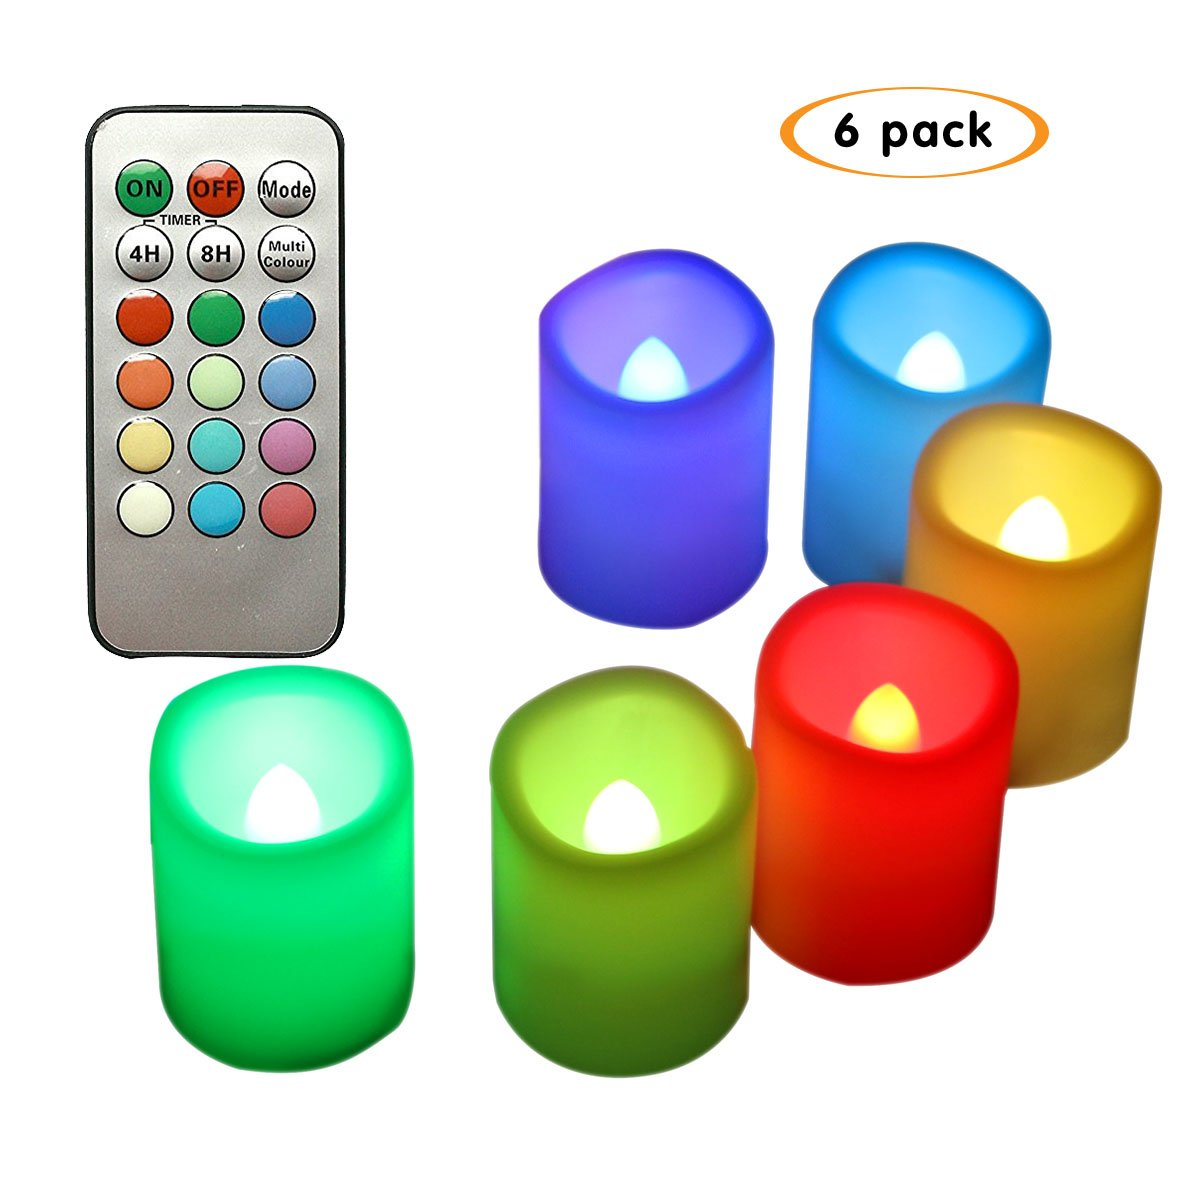 Realistic Flickering Flameless Votive Candles, Color Changing Night Light Timer and Remote Control Candles Set of 6 Bnlingxian